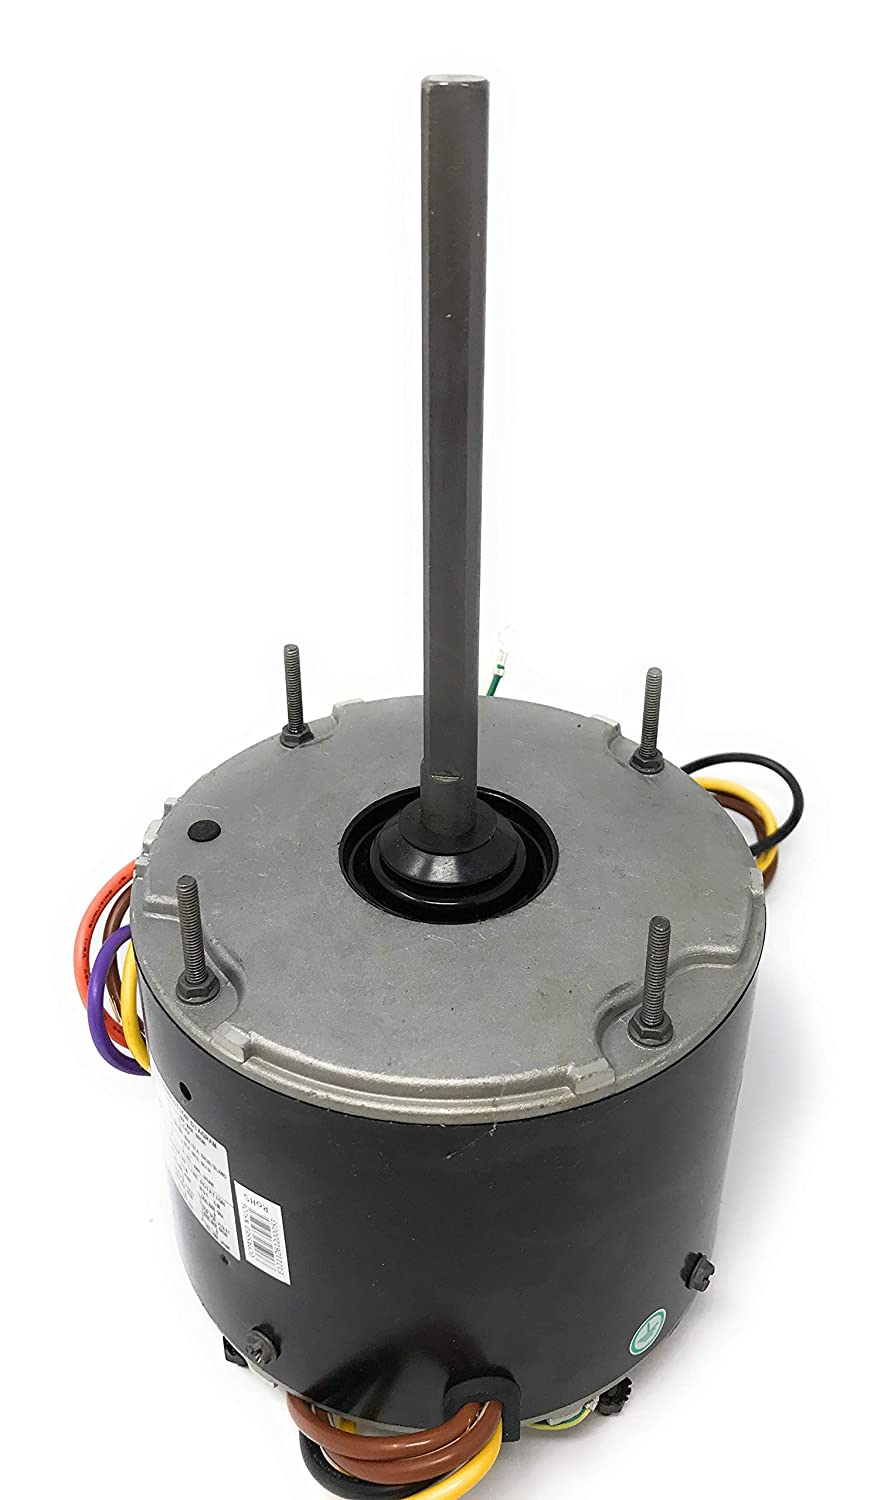 A1730, 1/2 HP Condenser Fan Motor 1075RPM